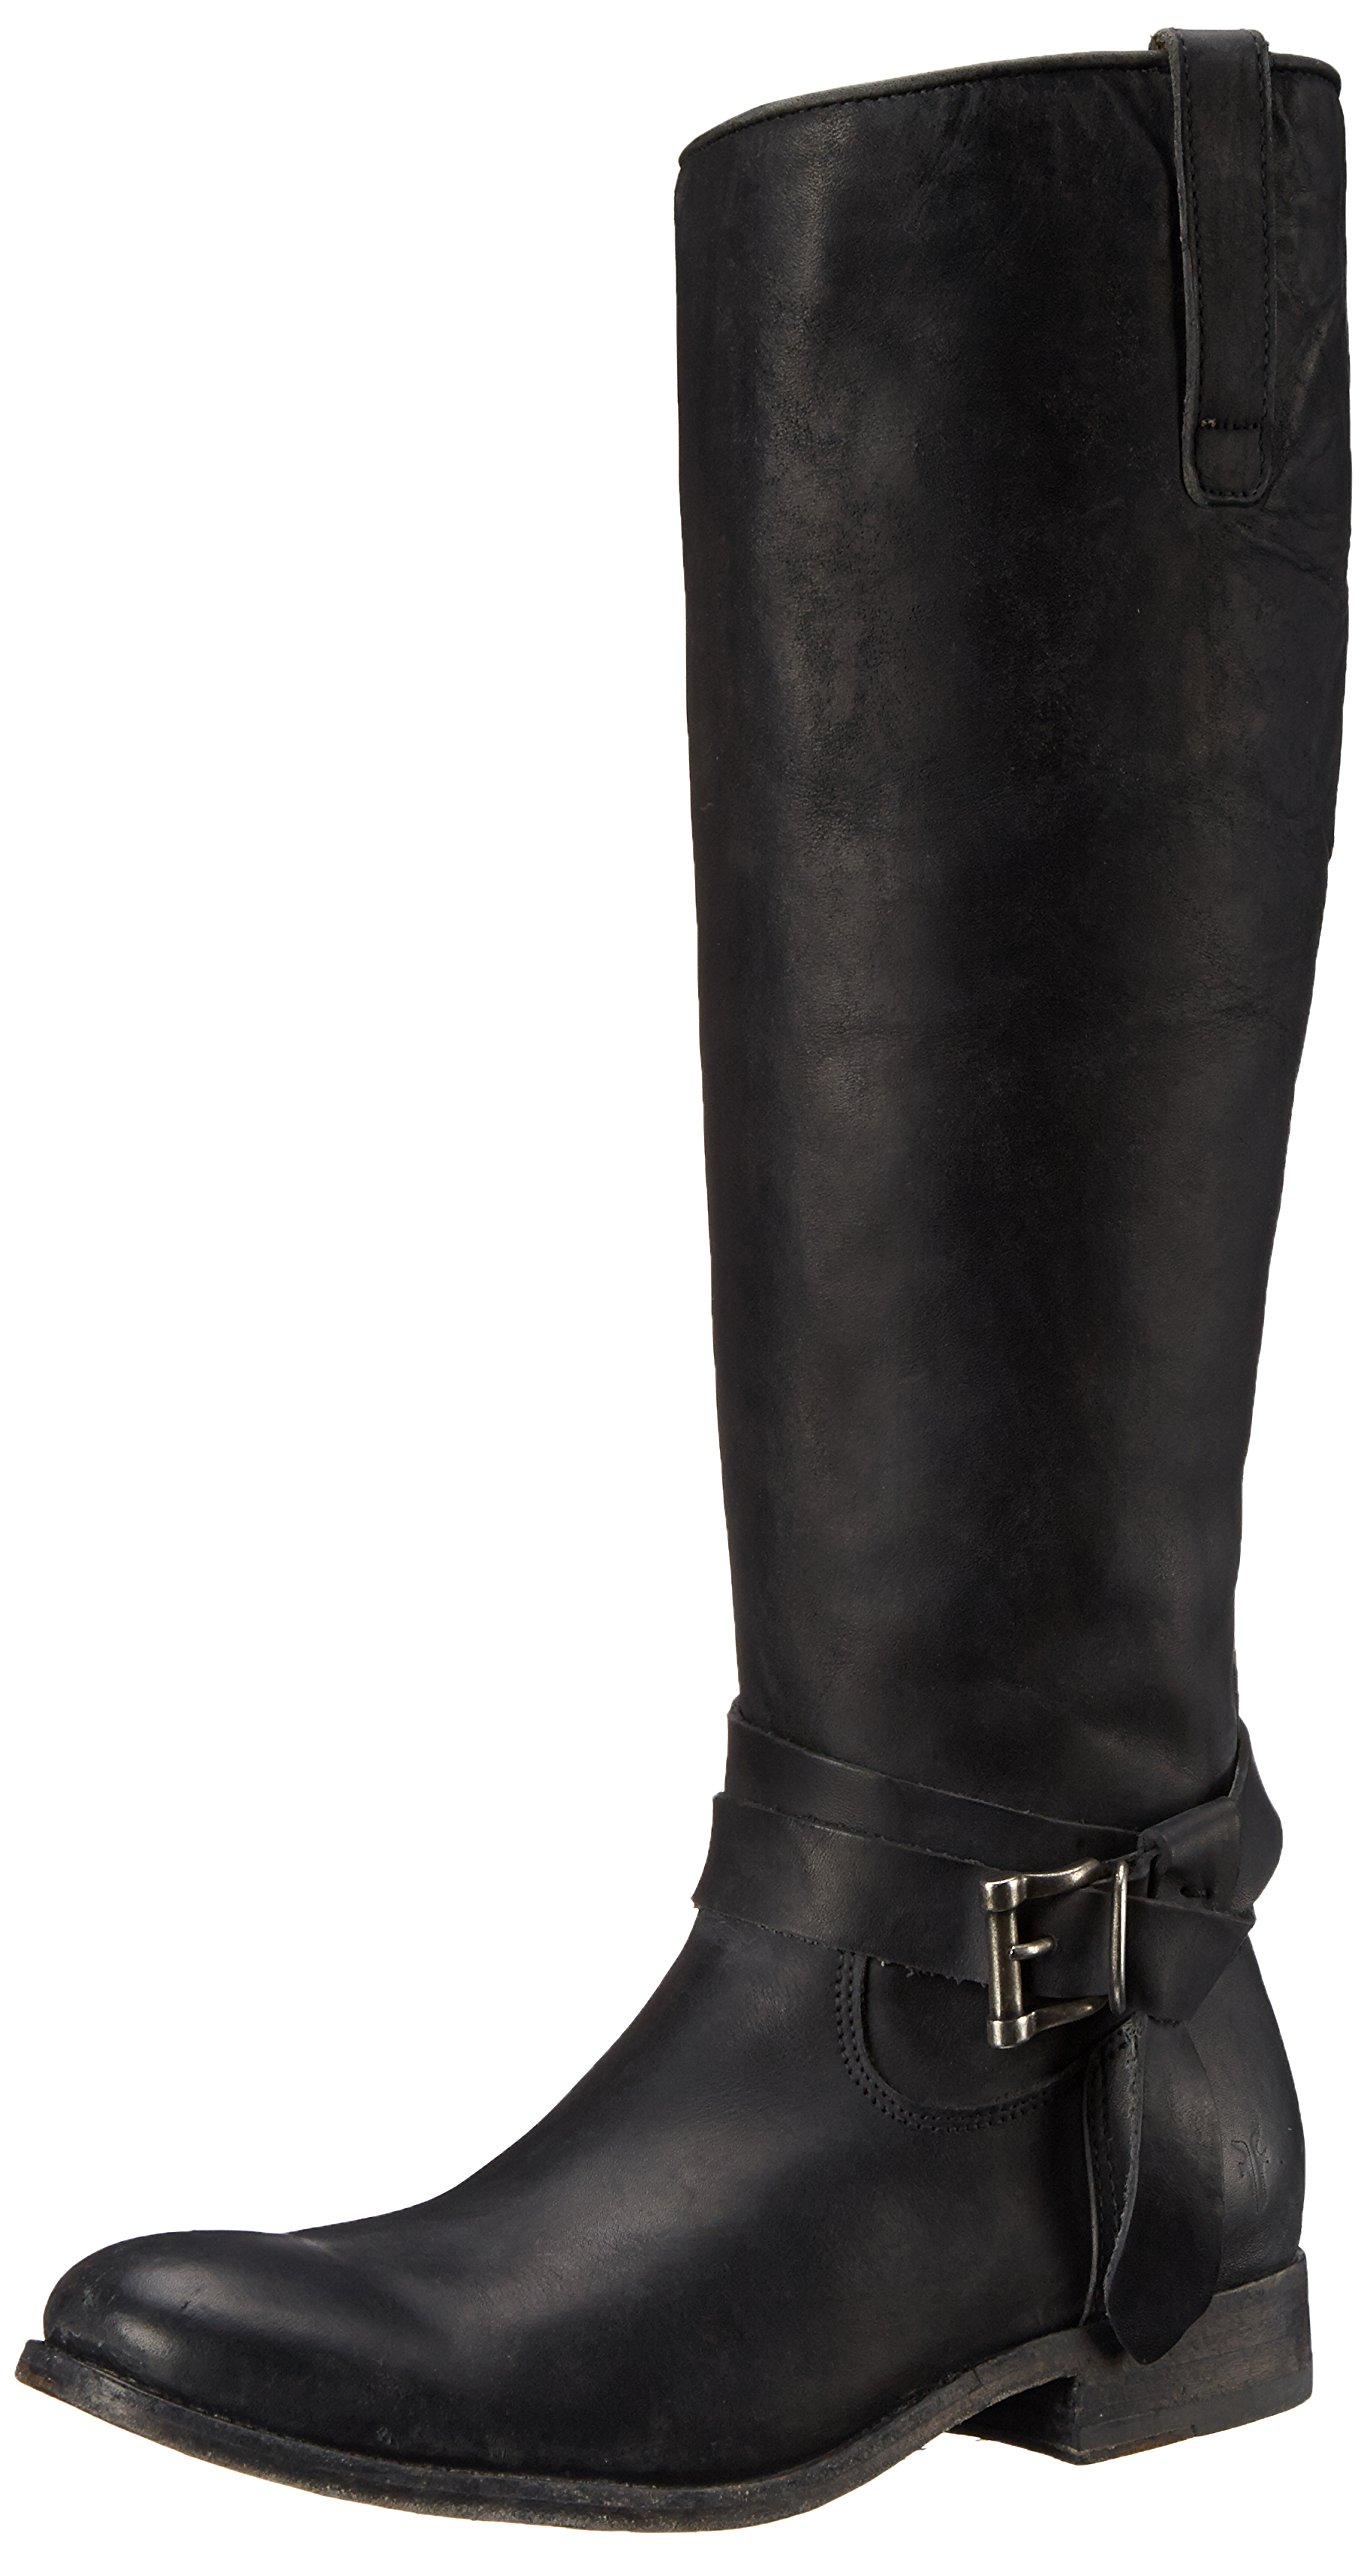 FRYE Women's Melissa Knotted Tall Riding Boot, Black, 8 M US